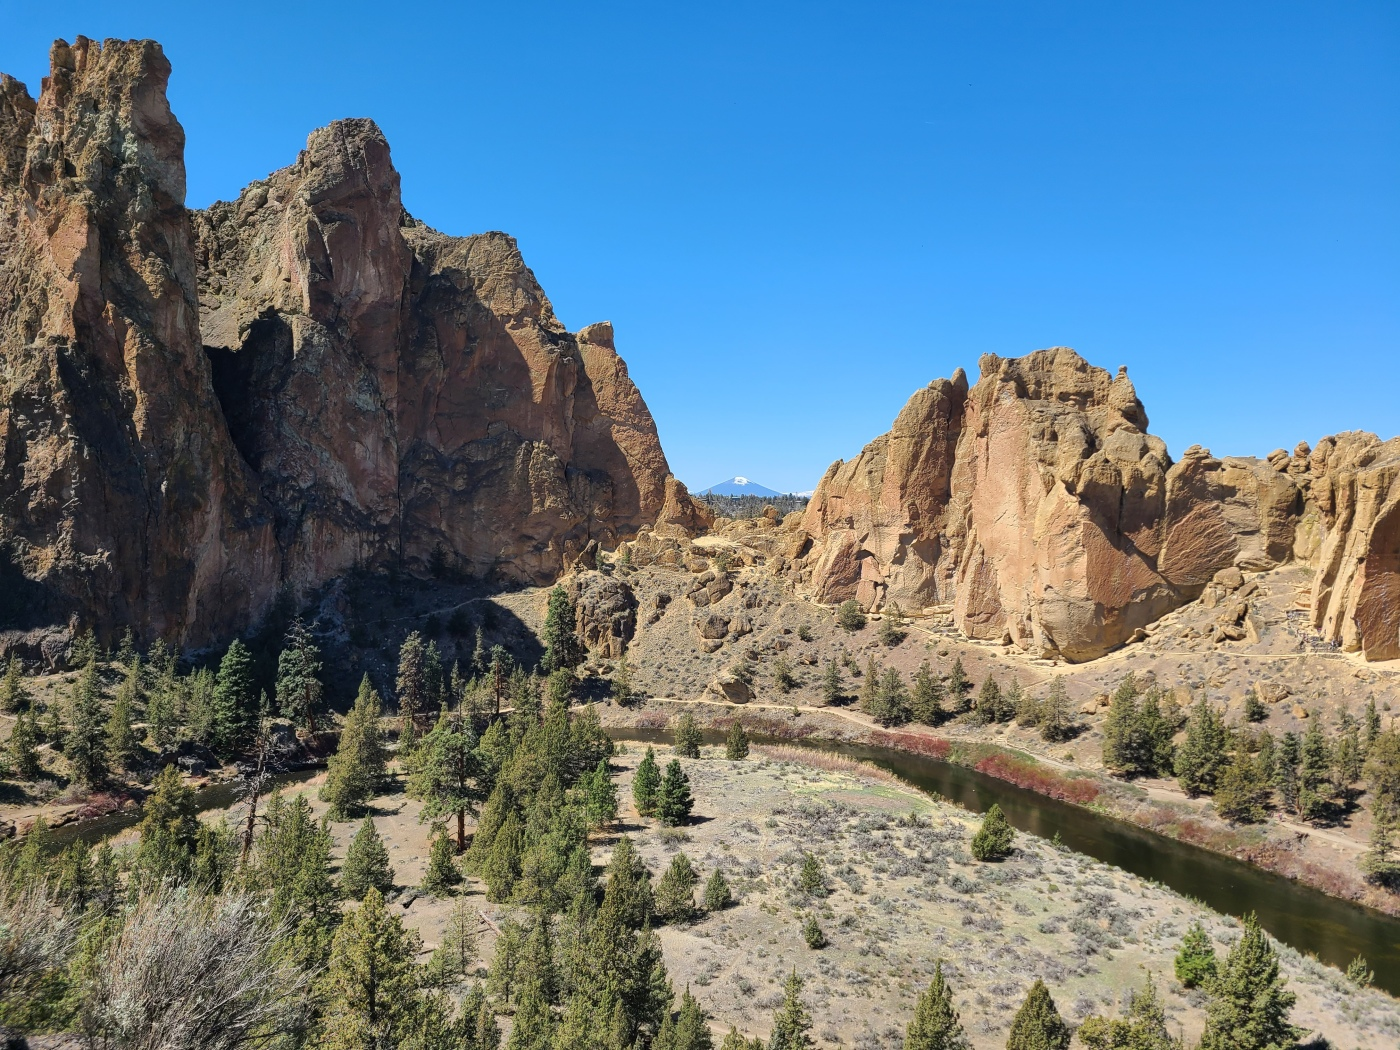 View from an overlook at Smith Rock State Park.River flowing through a canyon, tall cliffs rising above, a mountain in the background.